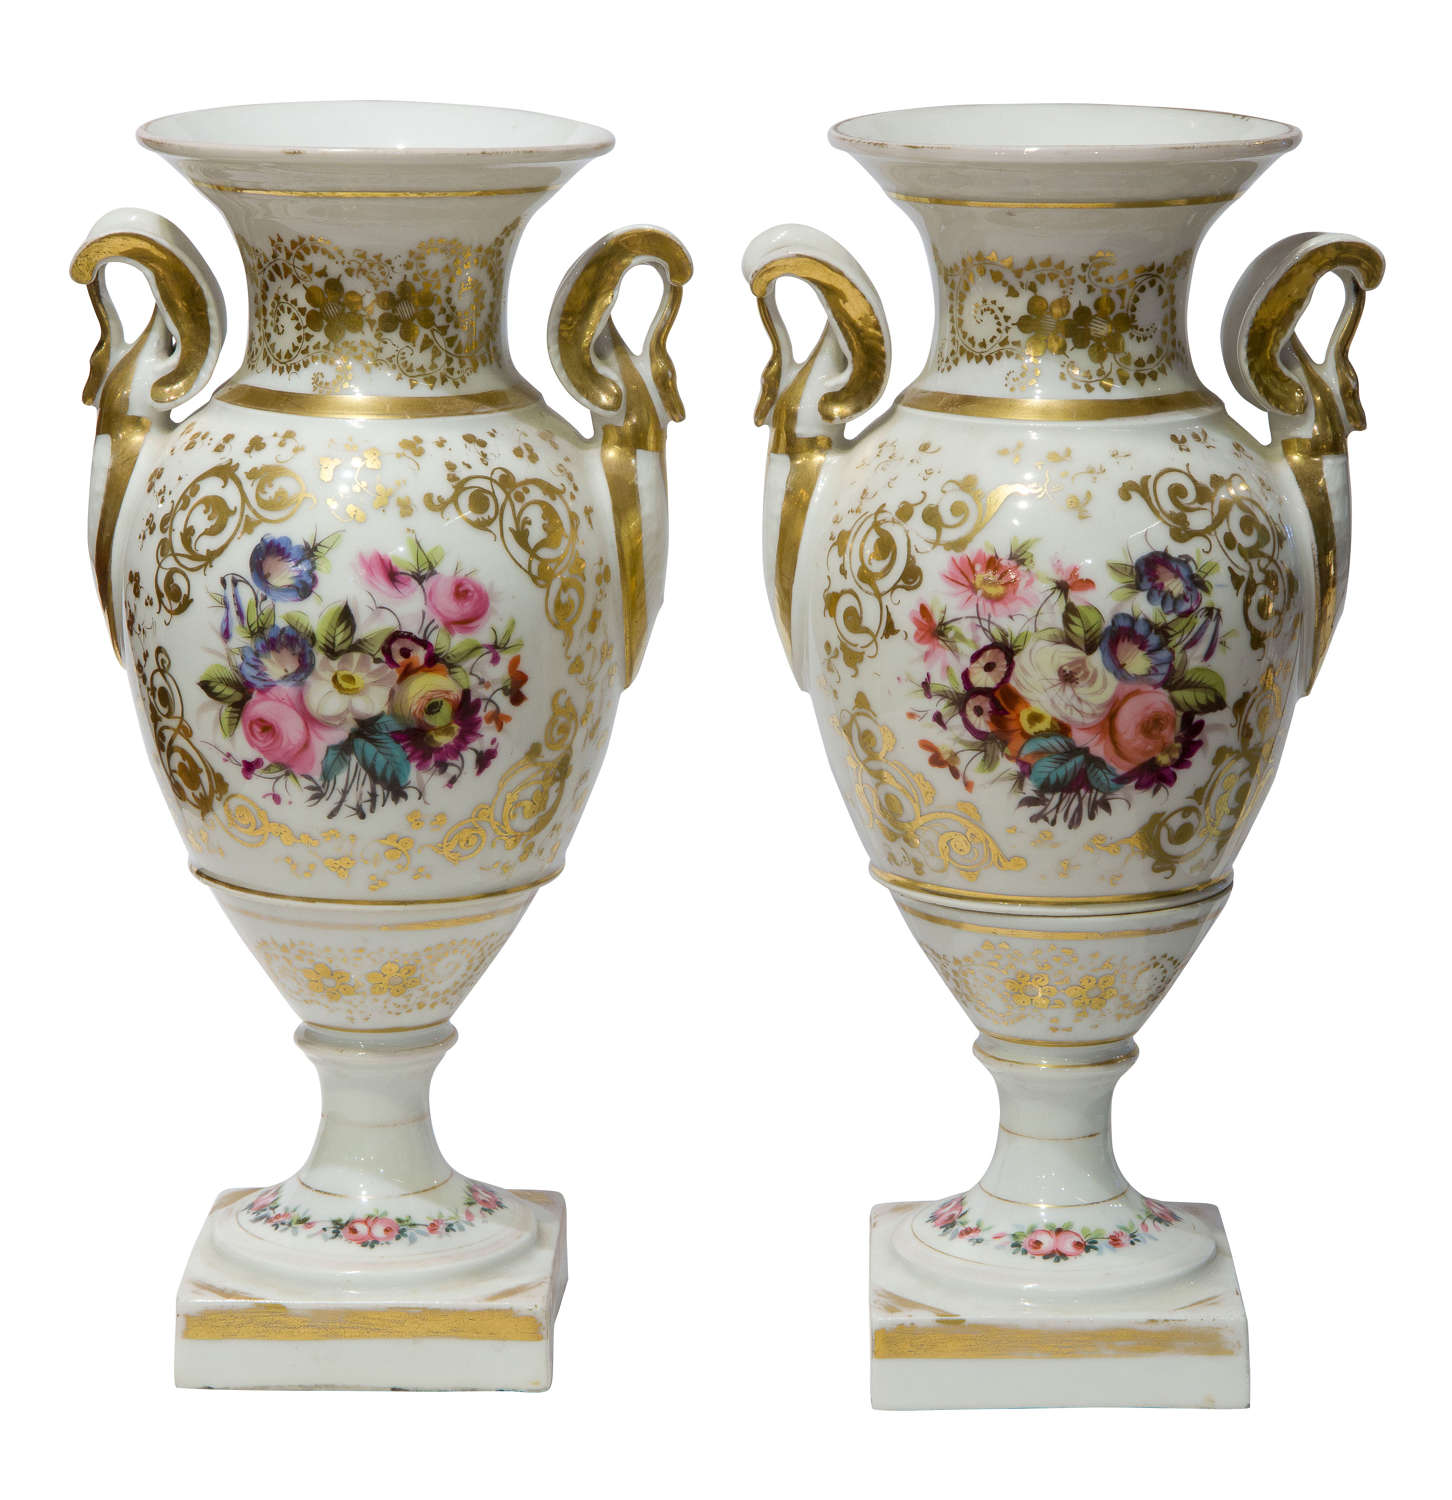 Pair of mid 19thCentury French porcelain vases